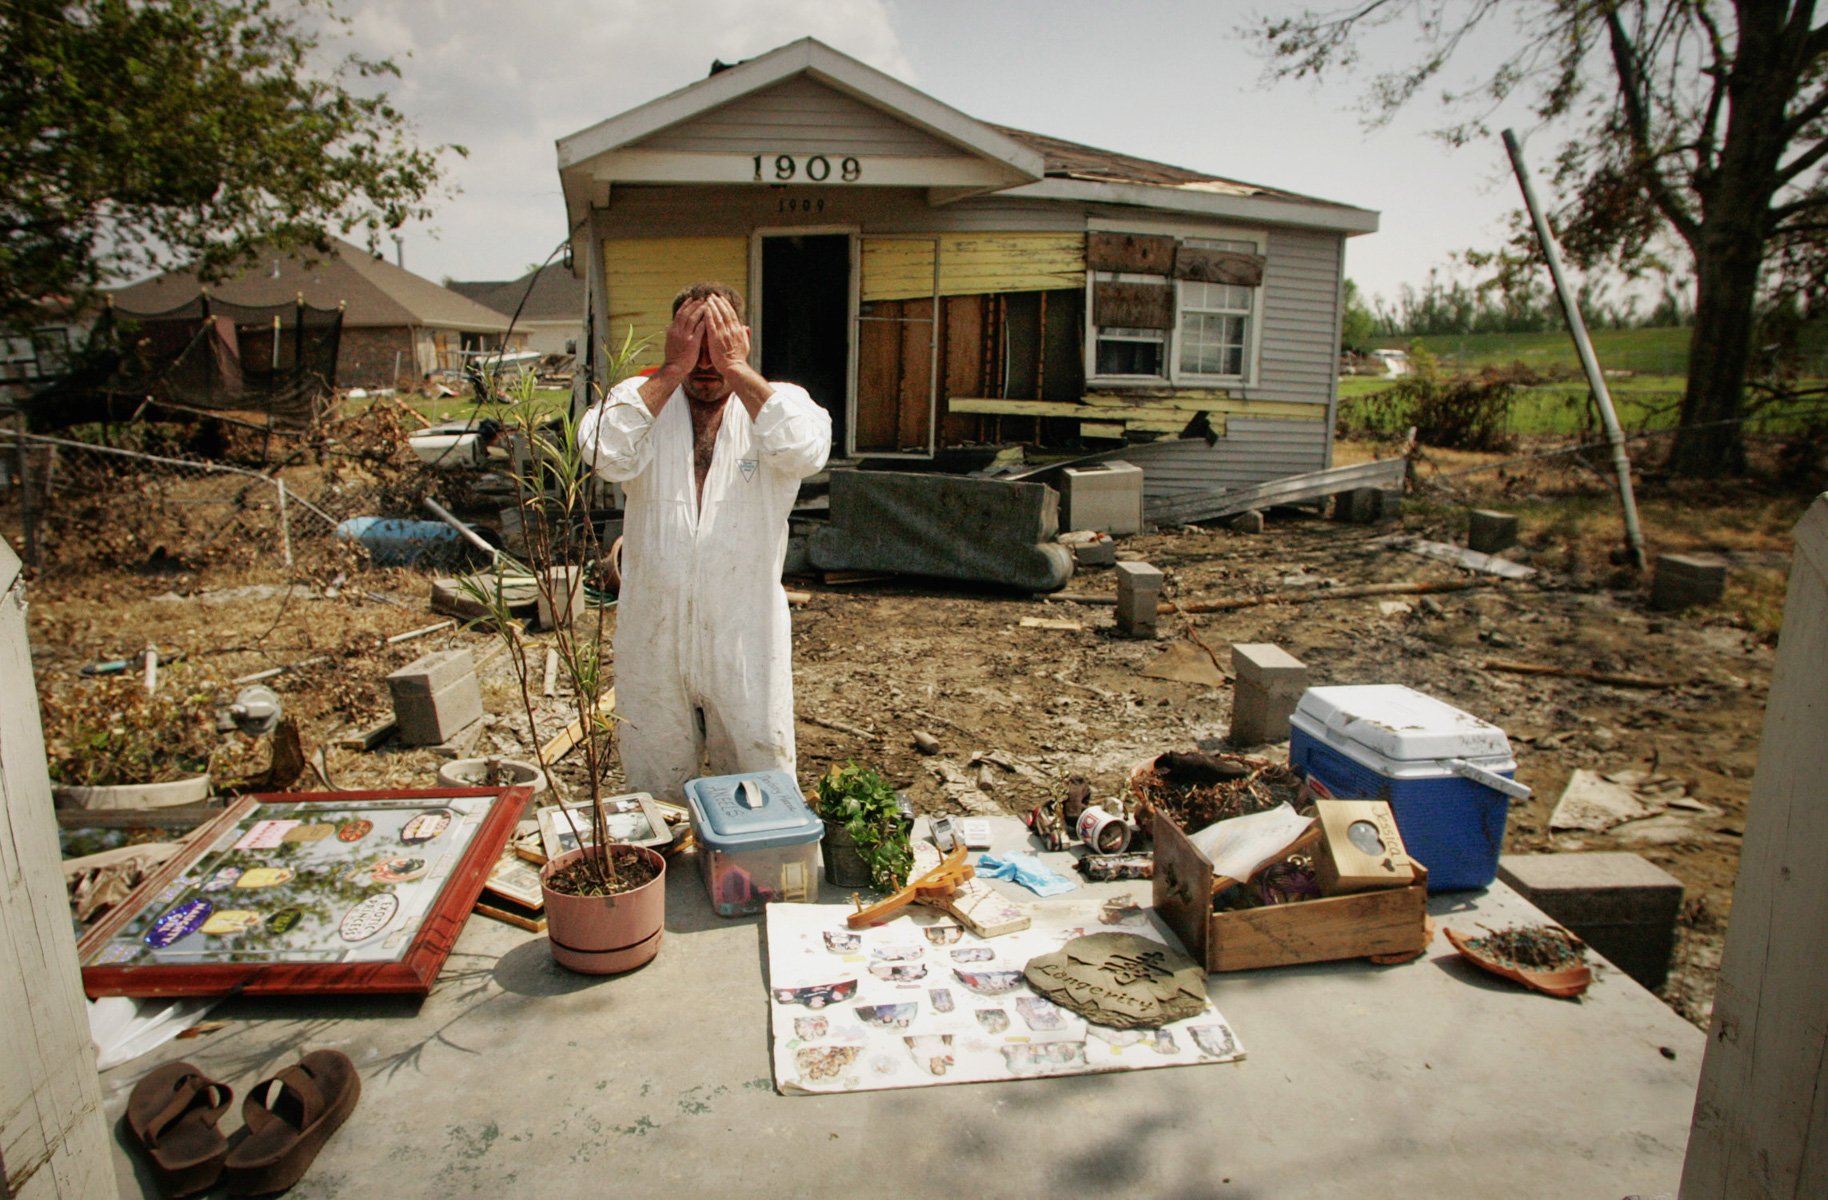 Untitled - Steve Minyard (cq) stands in the place where his house once stood September 16, in Meraux, La.  Spread out on stoop are all the items which he could salvage from the wreckage left after the wind and flooding of Hurricane Katrina.  Among the keepsakes Minyard was especially intent on finding were pictures of his sister who died little over a year ago.  Minyard shared the house in St. Bernard Parish with his fiancee Jessica Marques Piazza and the two had returned Friday to gather their belongings.  {quote}To some people this doesn't seem like much,{quote} Piazza said.  {quote}But this is all I had.  All I had.{quote}  The couple does not have any insurance.